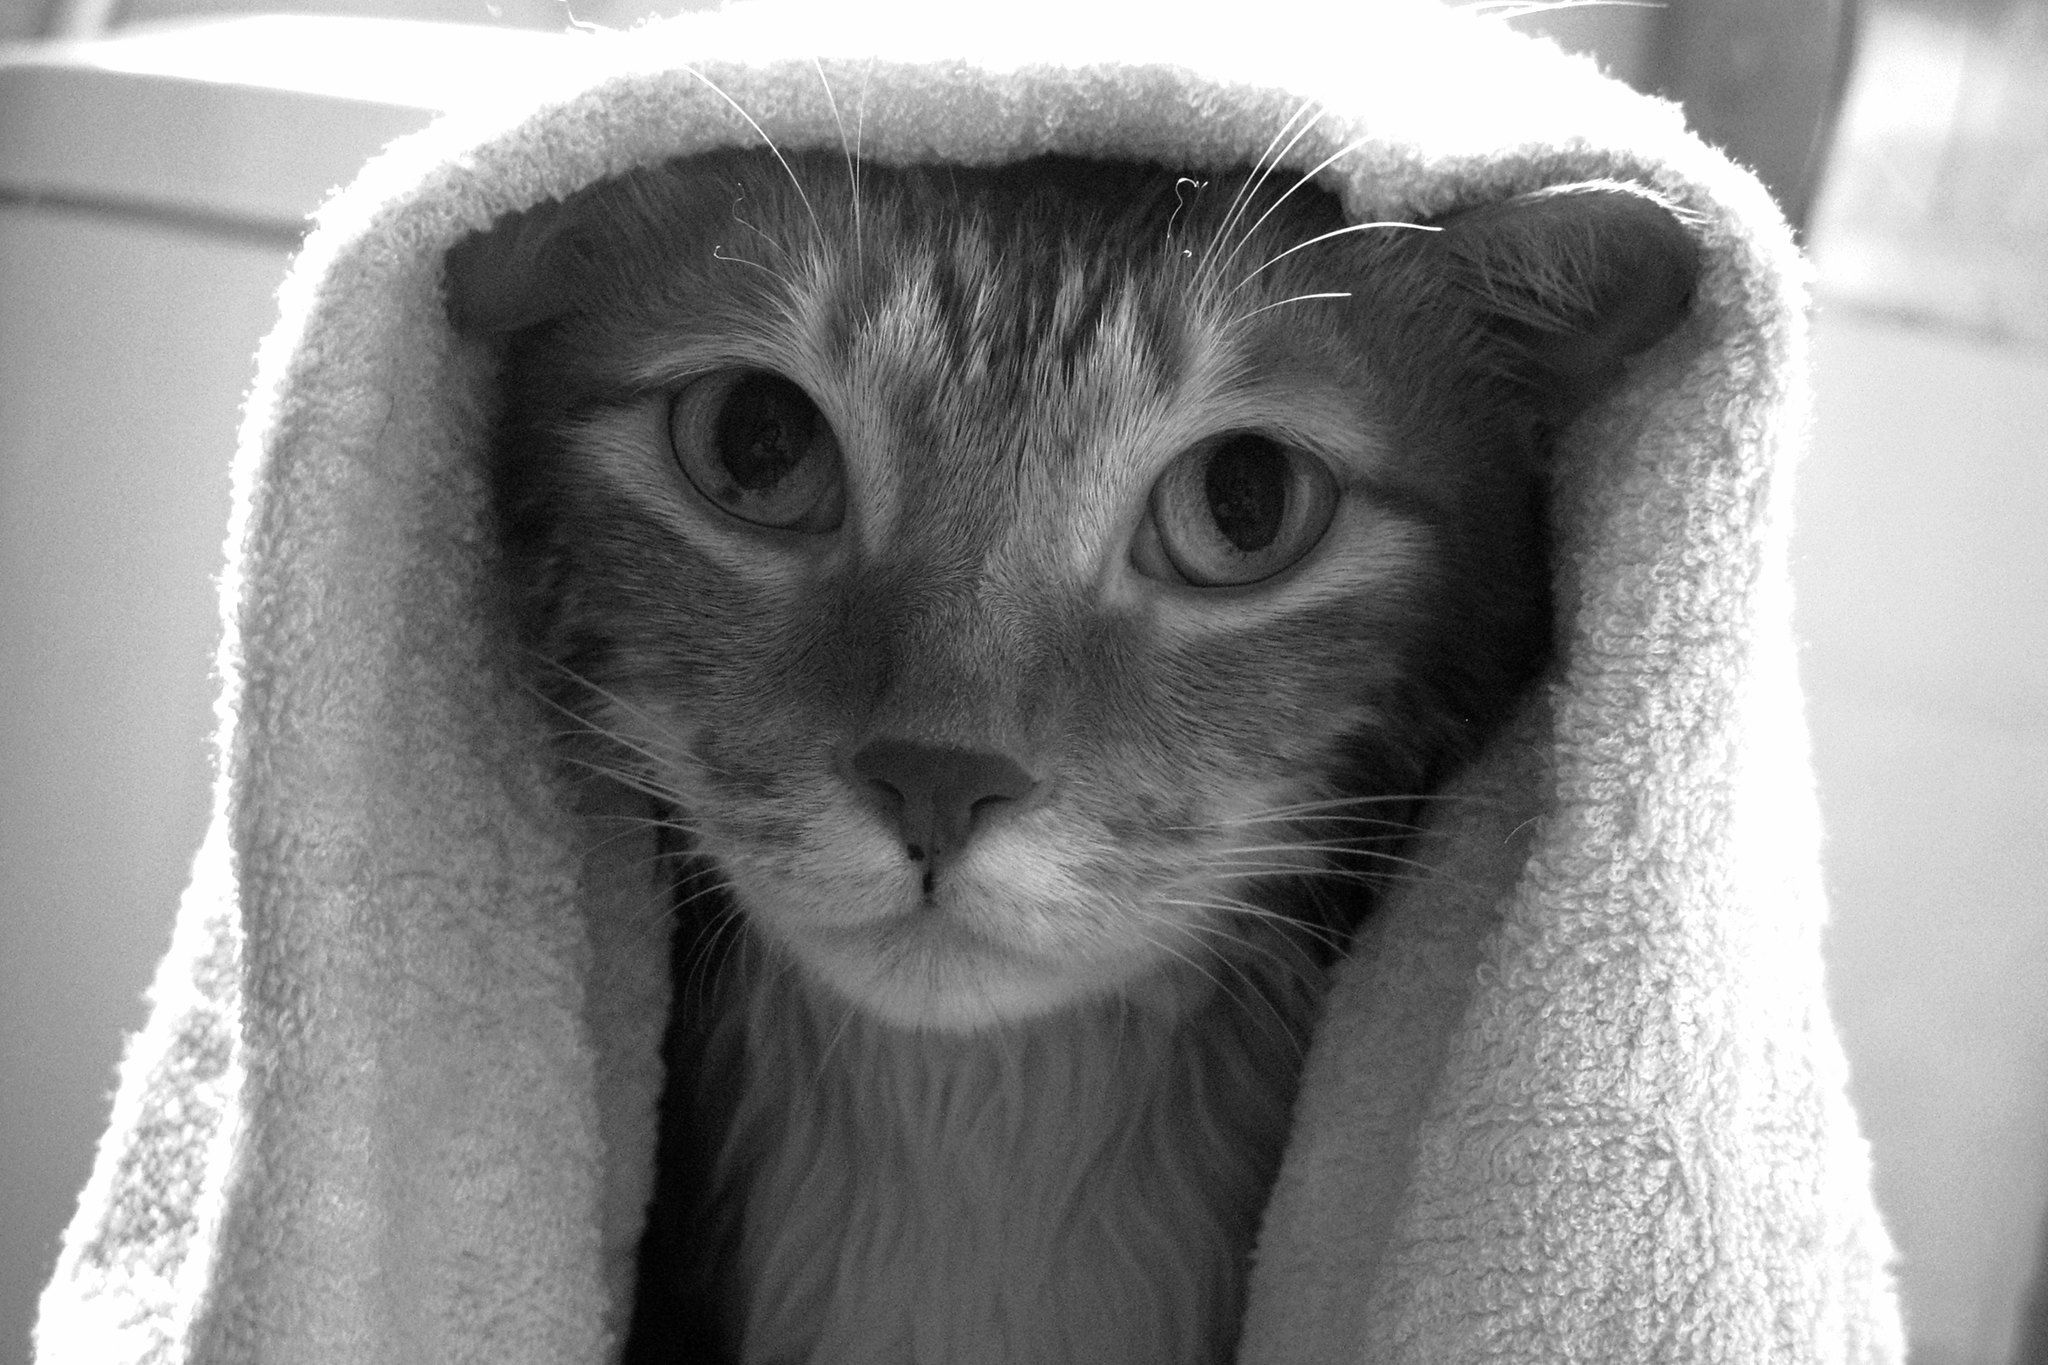 Big Eyes Kitten After Bath Kittens Kitten Big Eyes